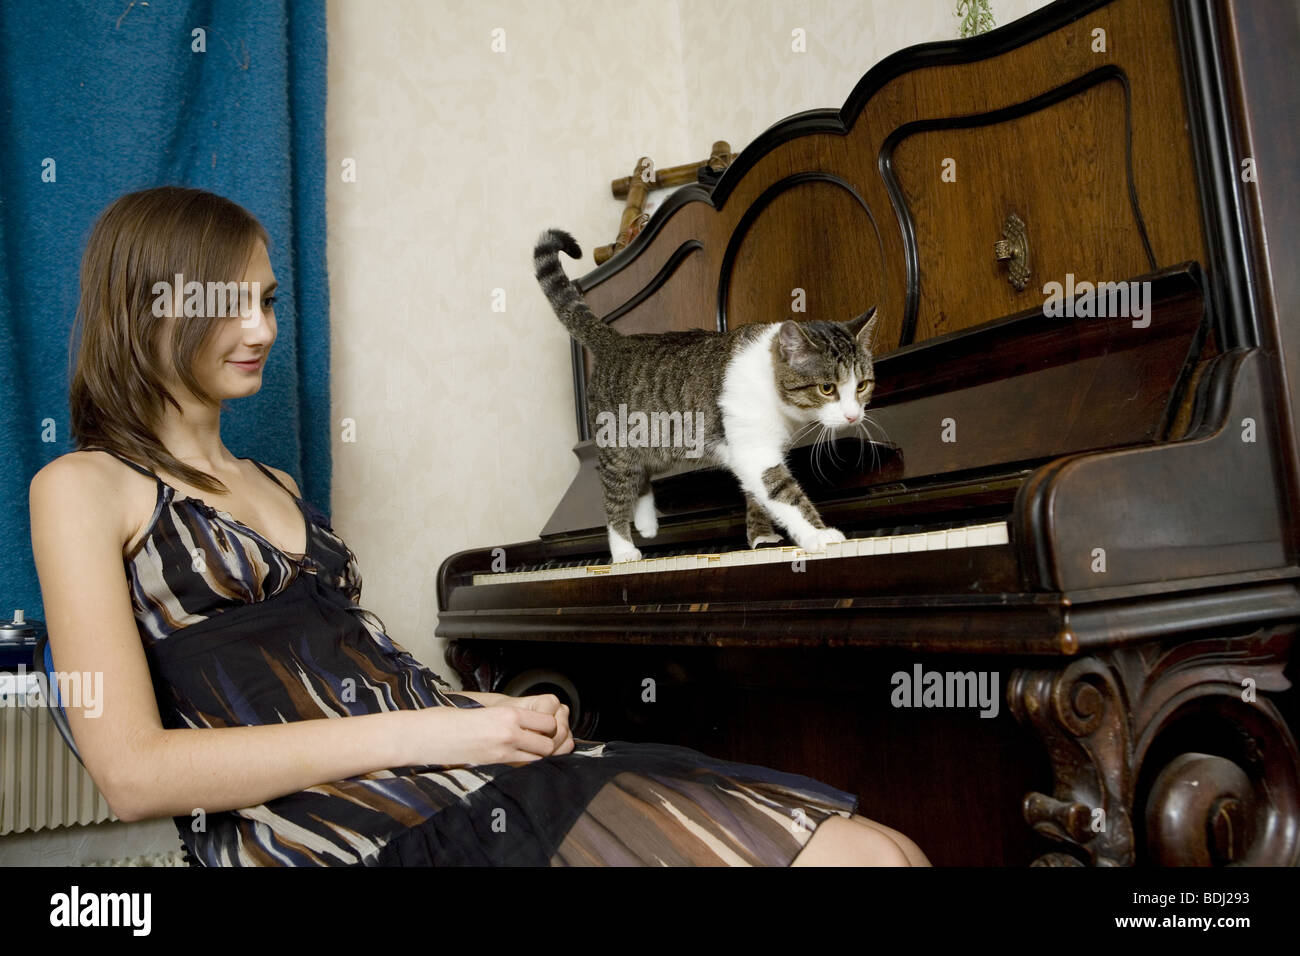 cat piano music funny stockfotos cat piano music funny bilder alamy. Black Bedroom Furniture Sets. Home Design Ideas